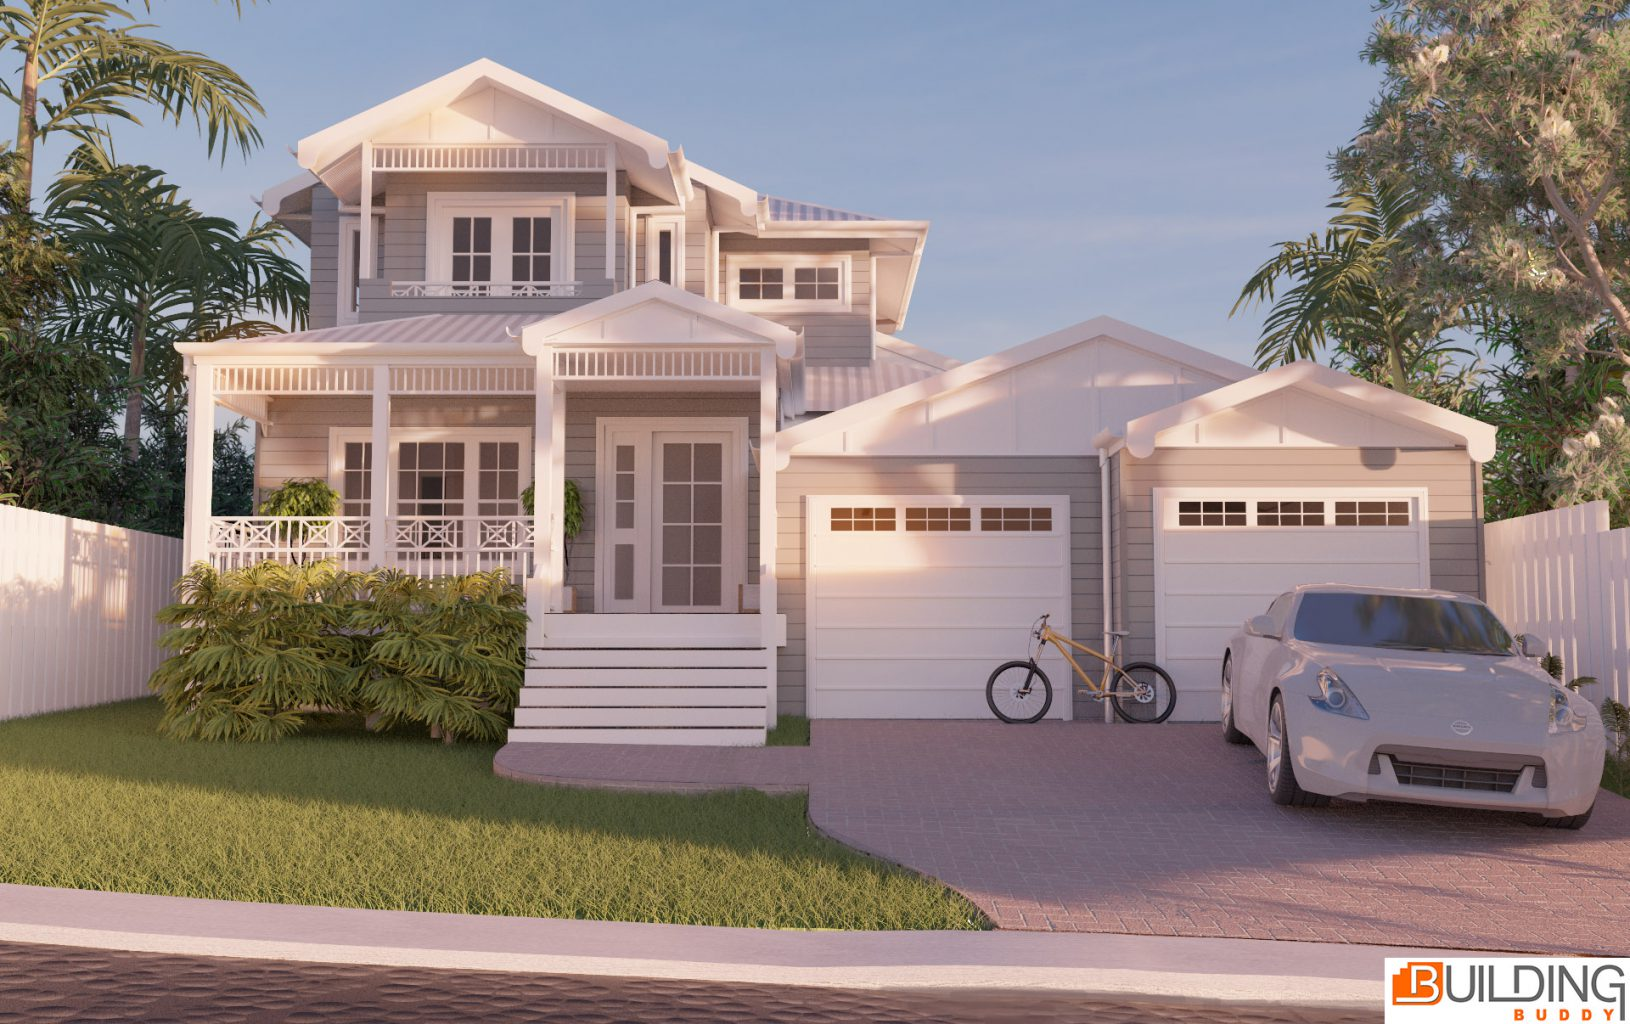 House plans home designs building prices builders connecting customers builders - Unique house concept to make contrasting exterior design ...